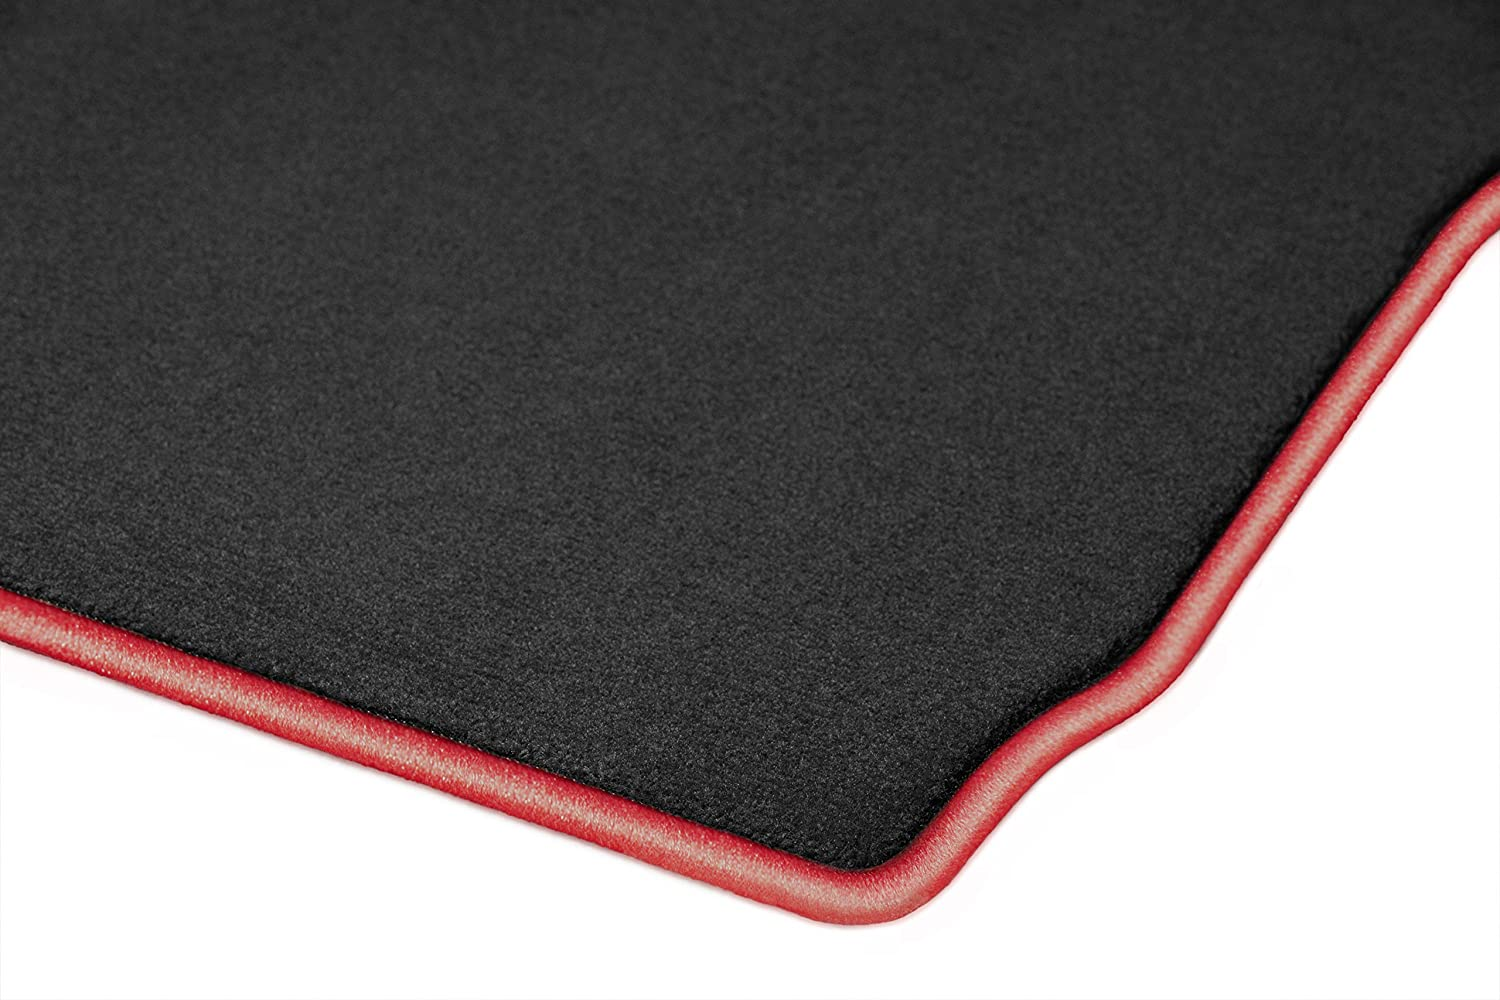 1994 GGBAILEY D3251A-F1A-BLK/_BR Custom Fit Automotive Carpet Floor Mats for 1993 1995 Mercury Tracer Wagon Black with Red Edging Driver /& Passenger